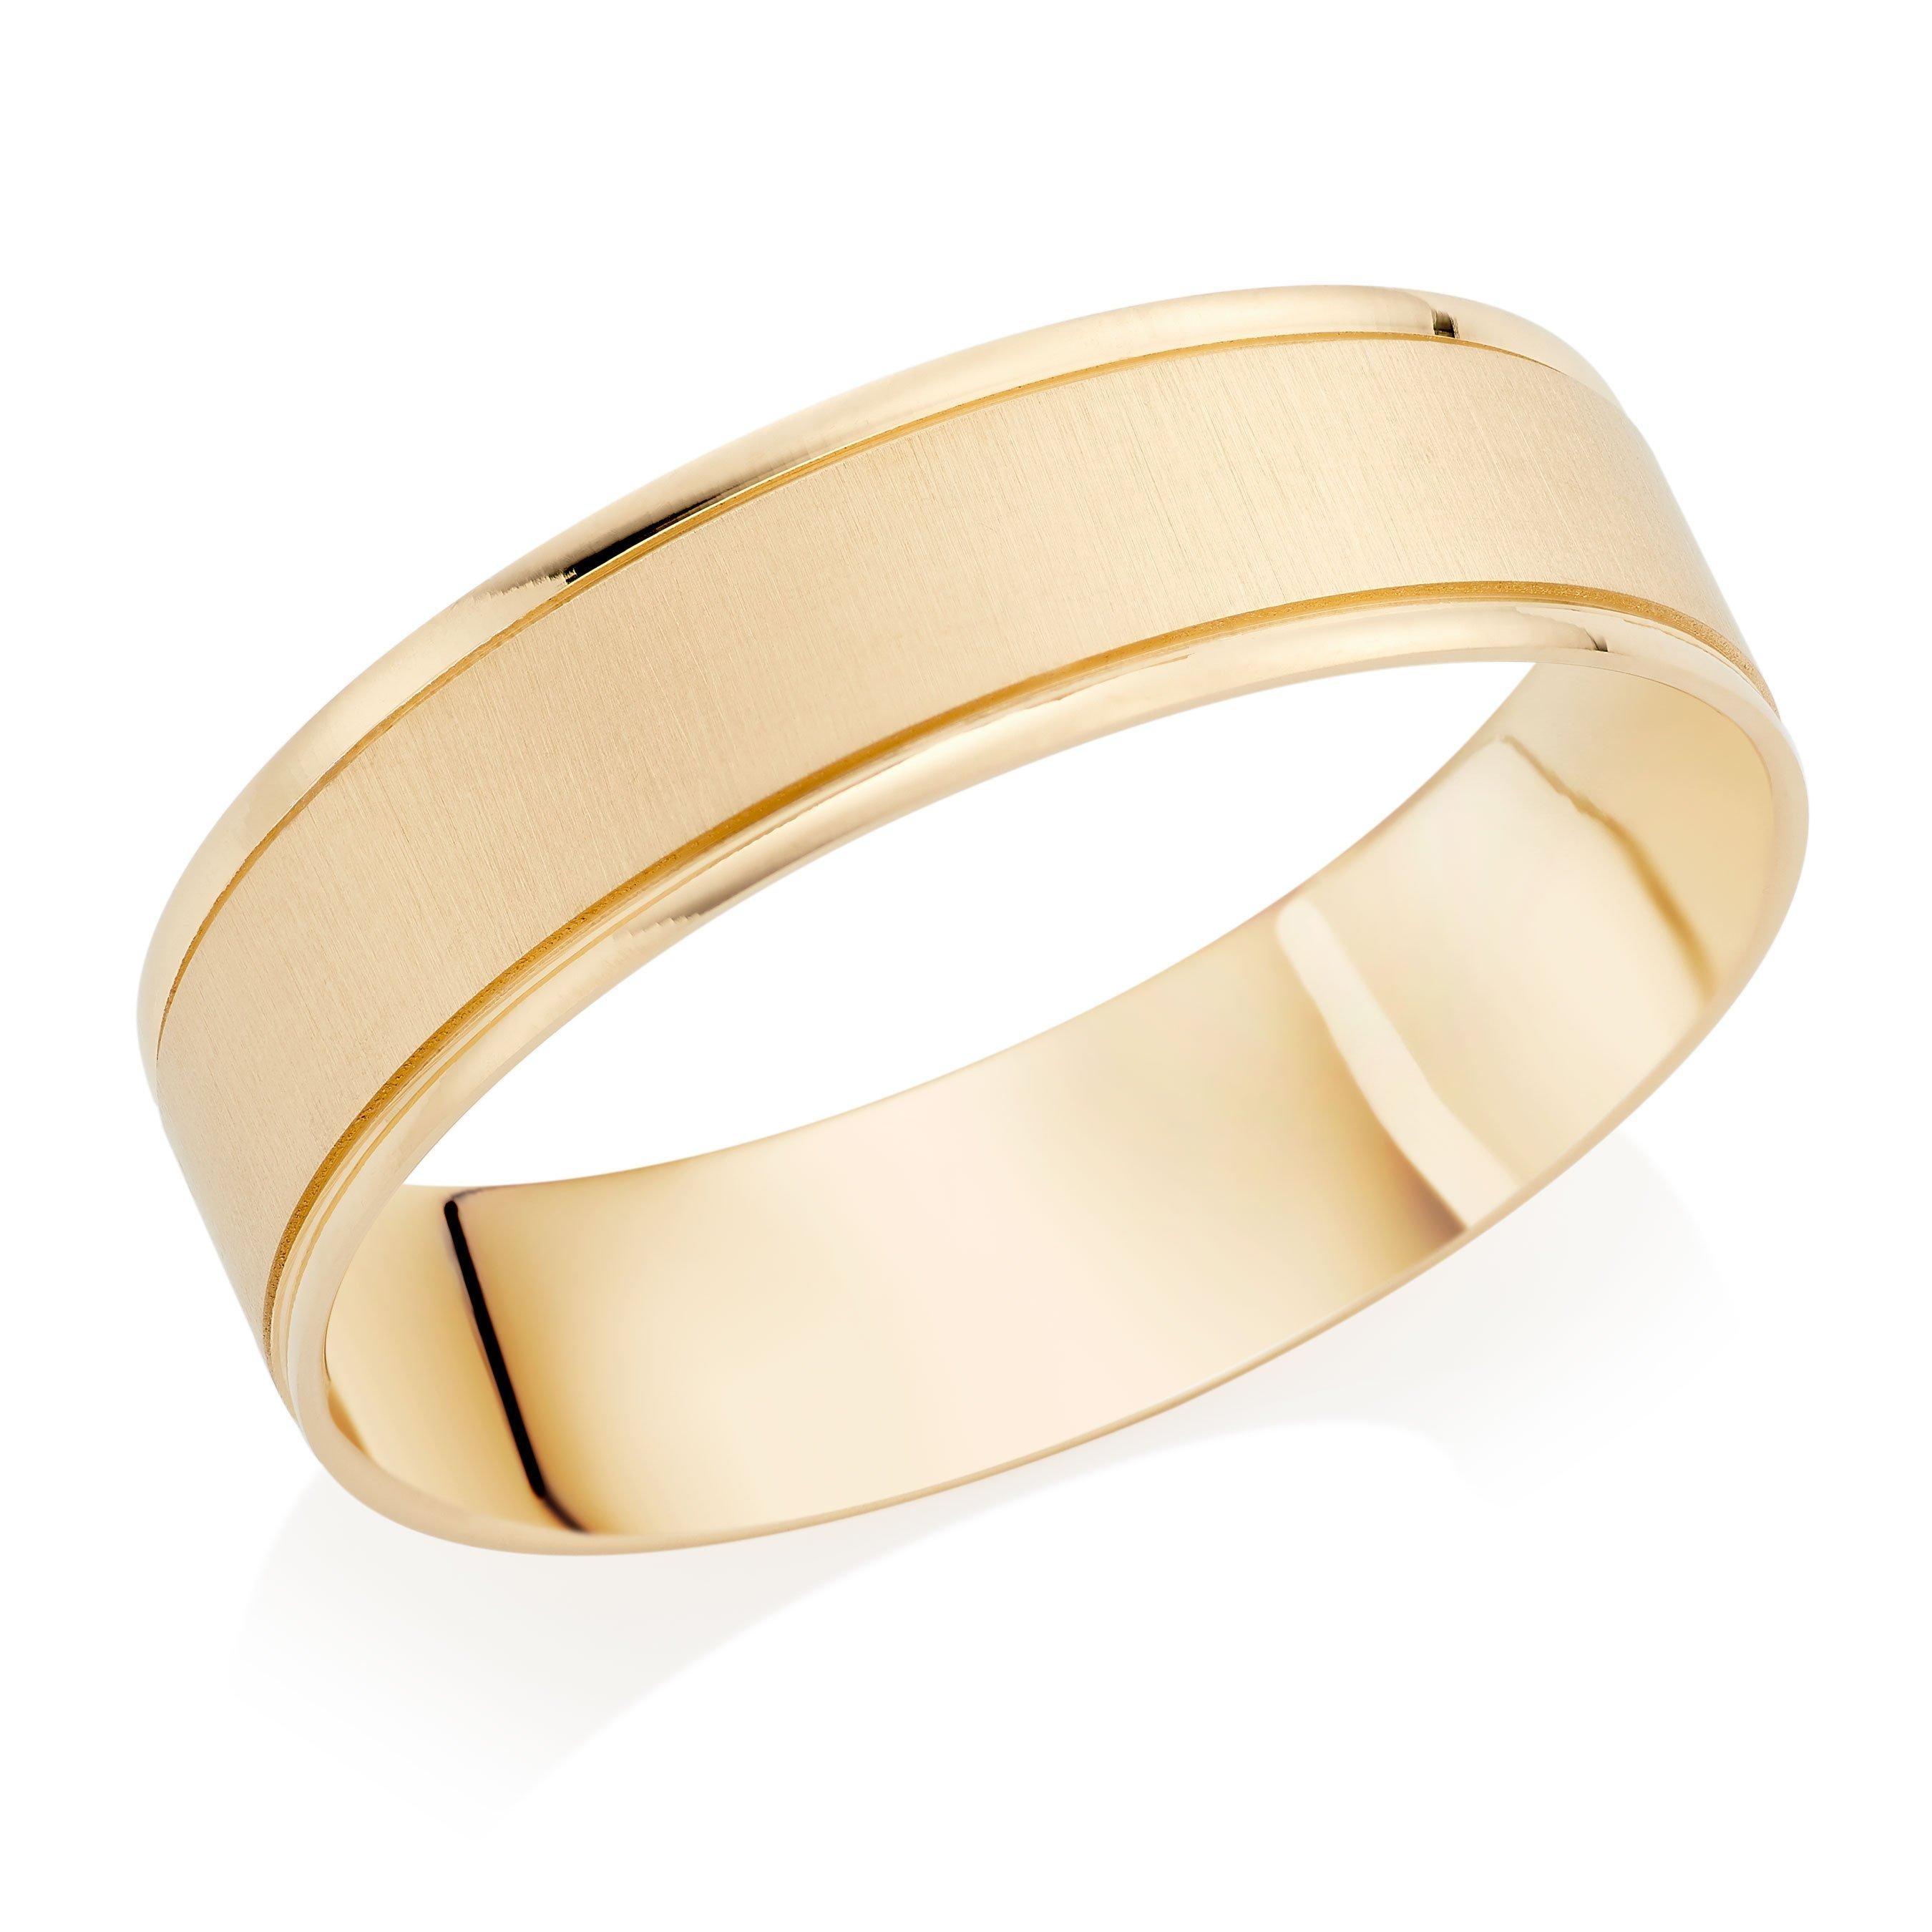 18ct Gold Satin Men's Wedding Ring